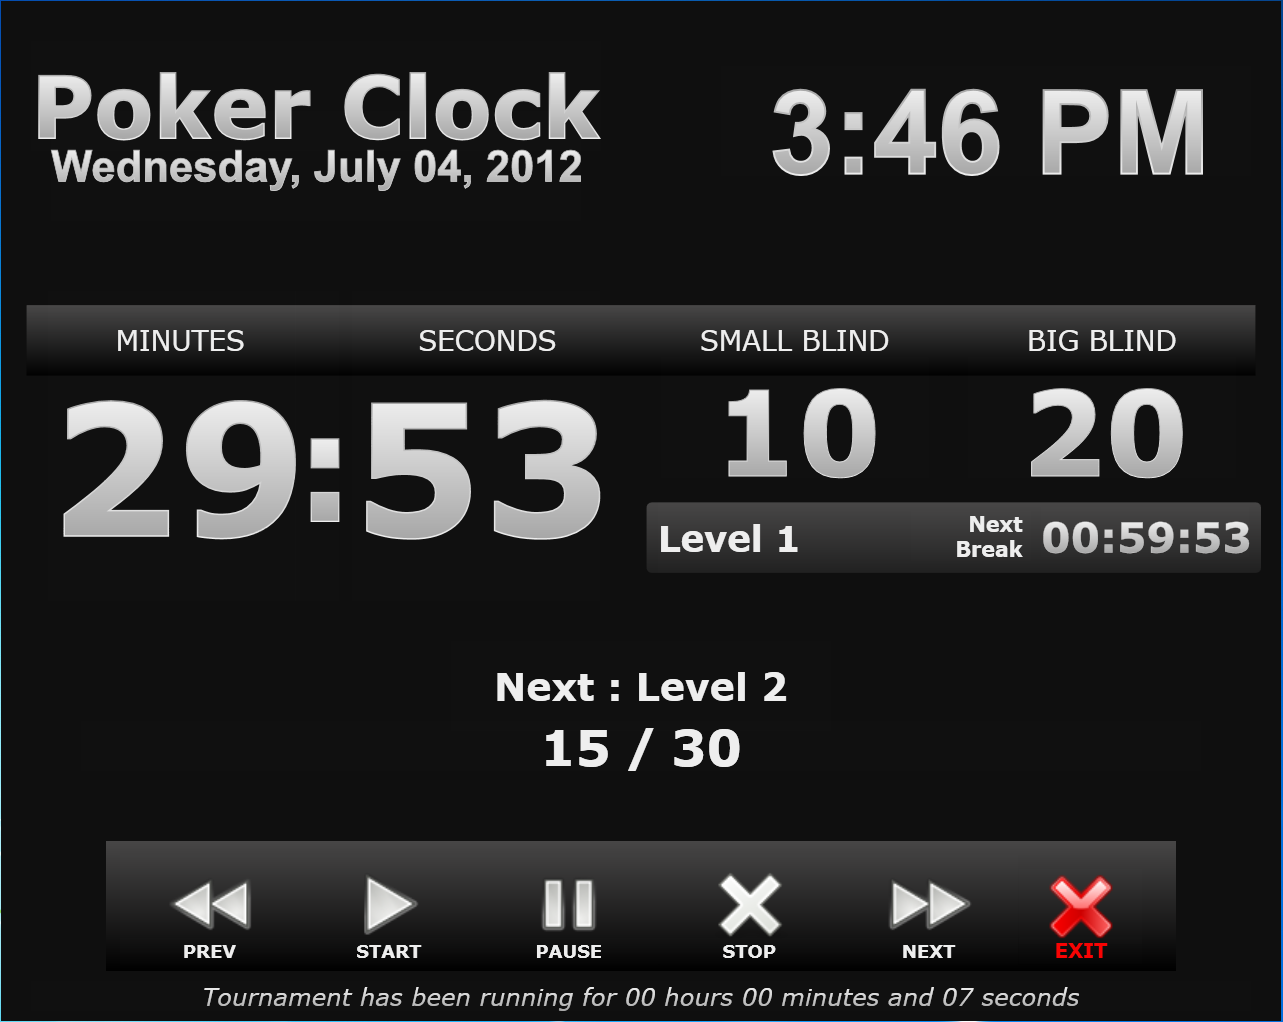 The clock poker tournament